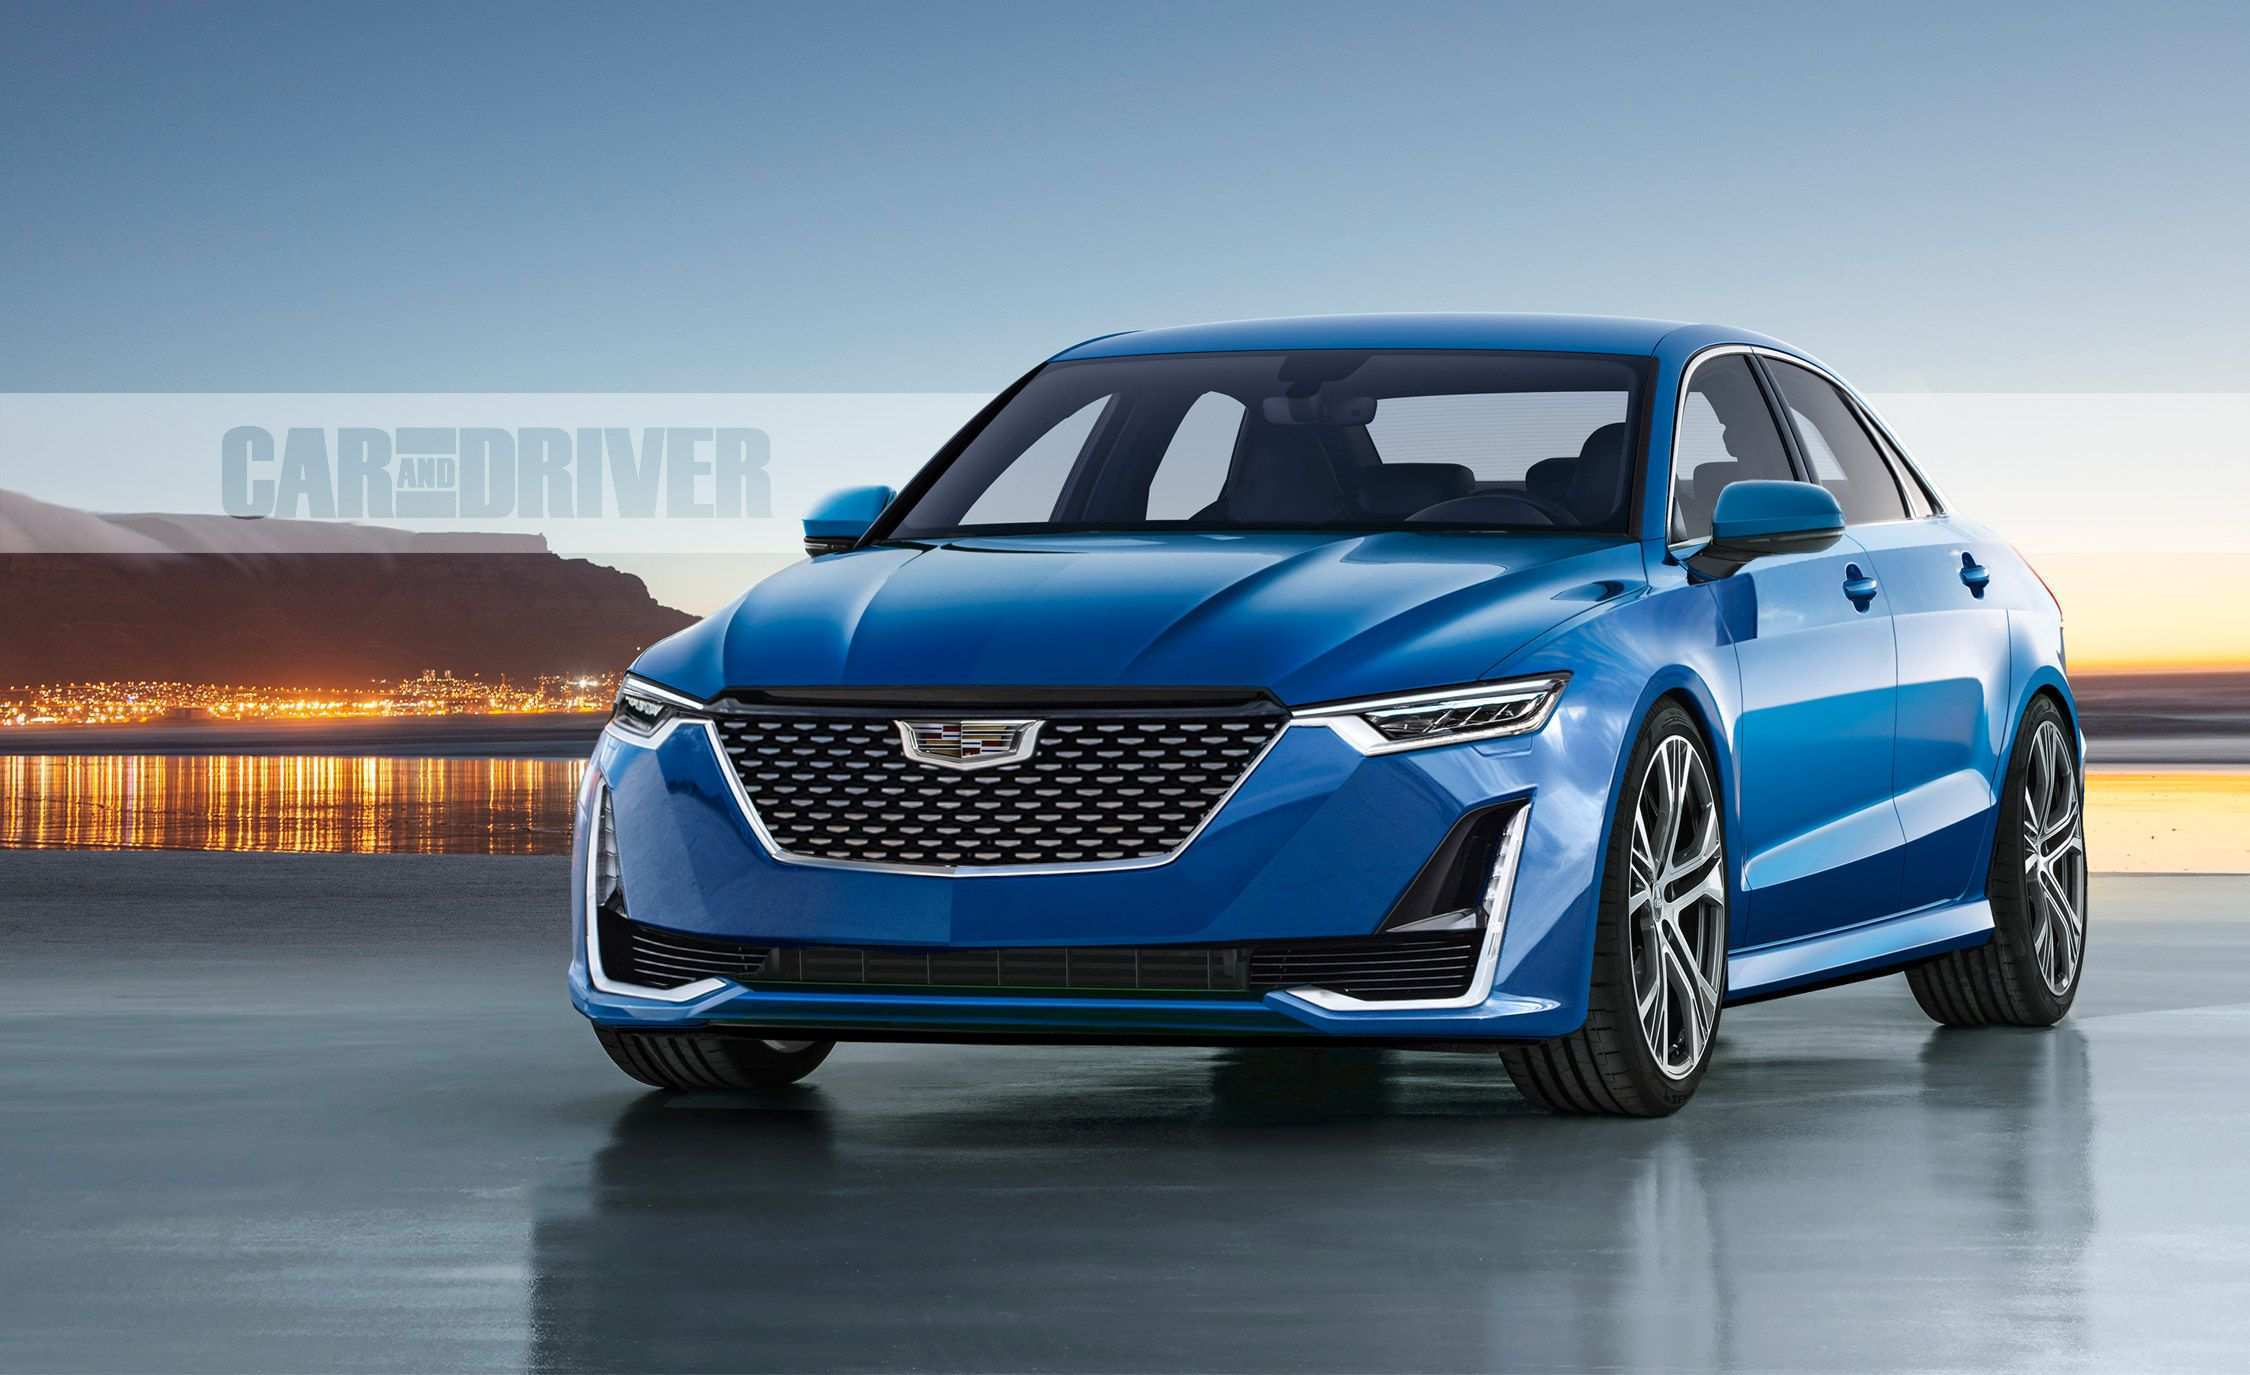 42 New 2020 Cadillac CT6 Images for 2020 Cadillac CT6